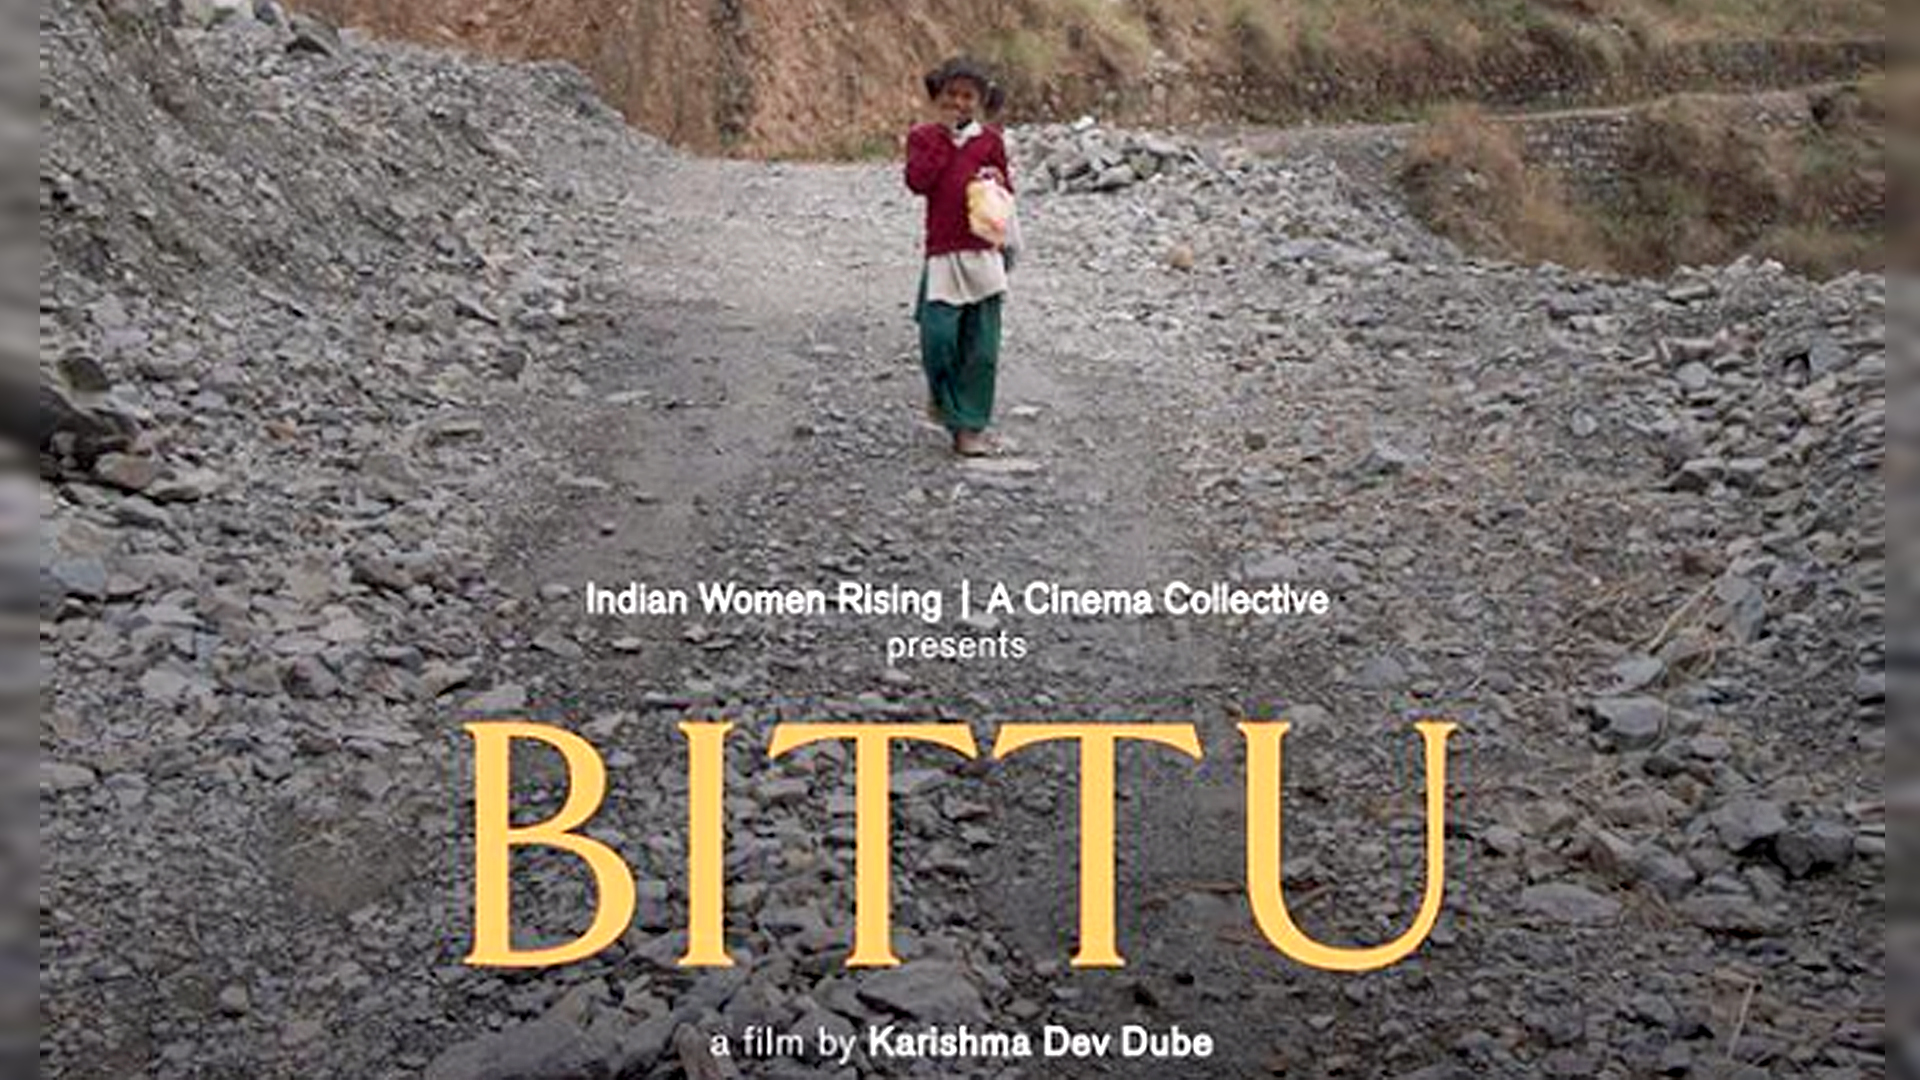 Film Related To Tragic Incident In India Advances In Oscar Race